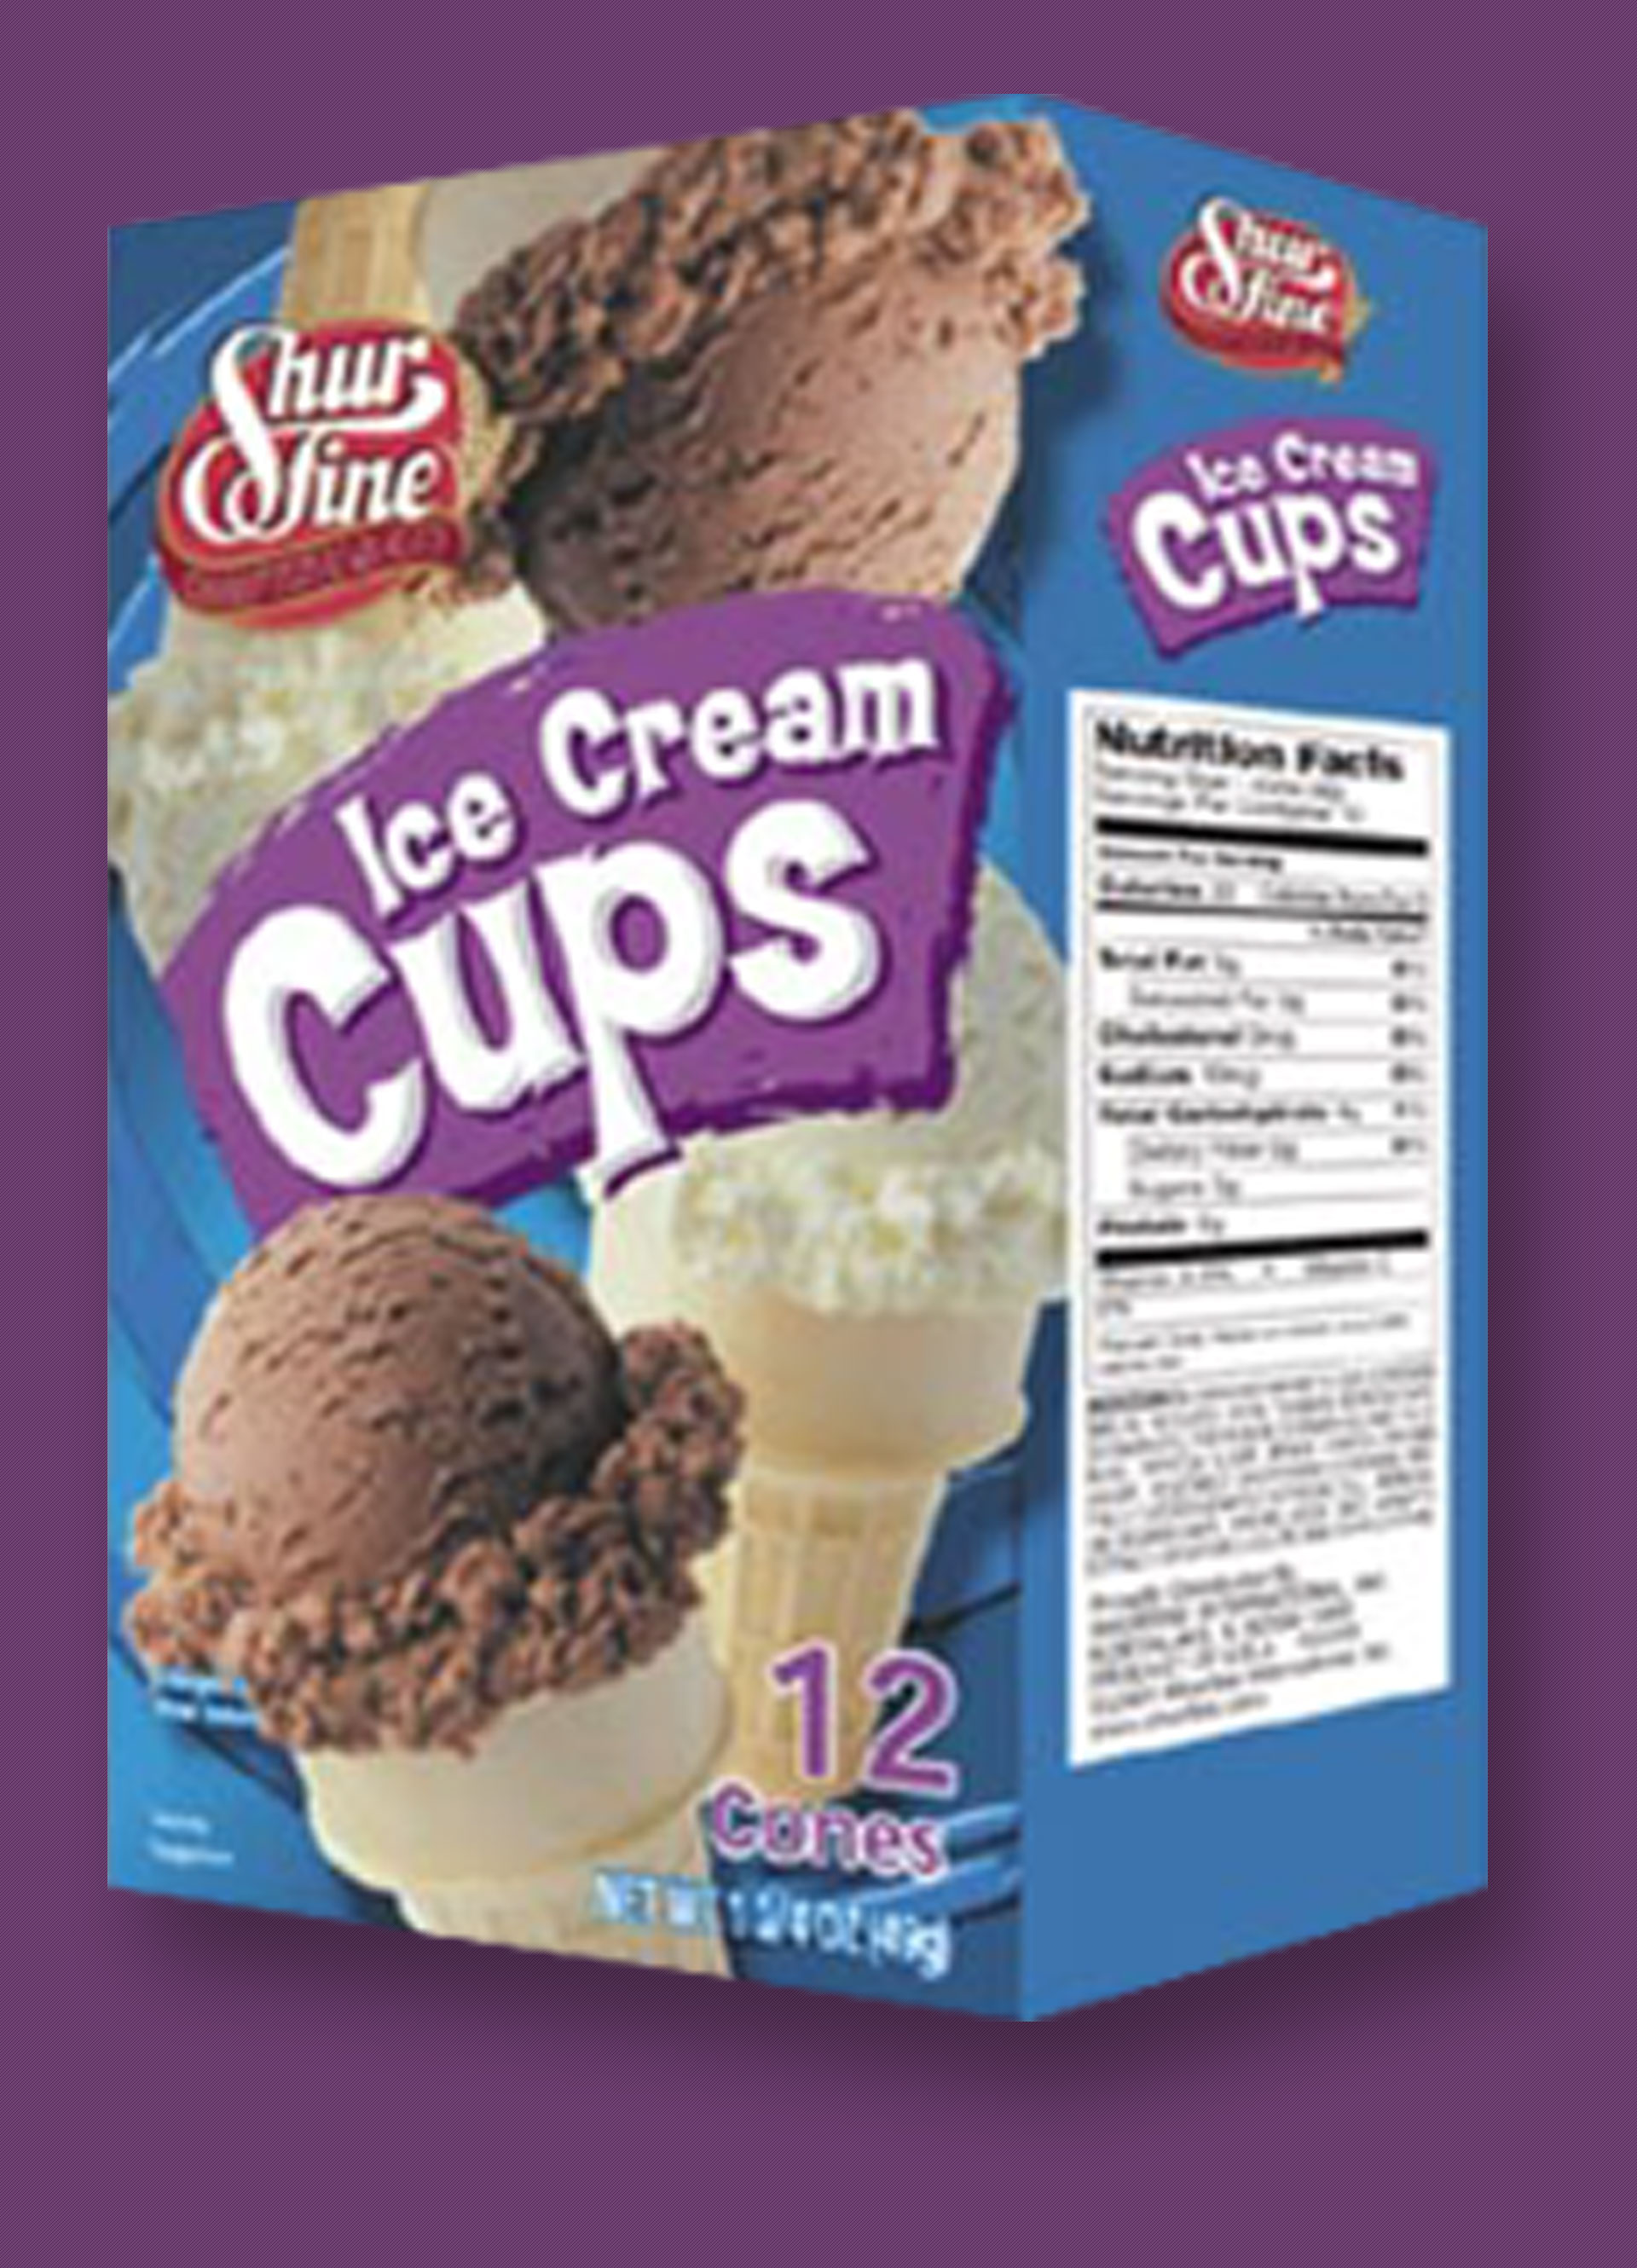 Icecream_cups_mockup_with_background